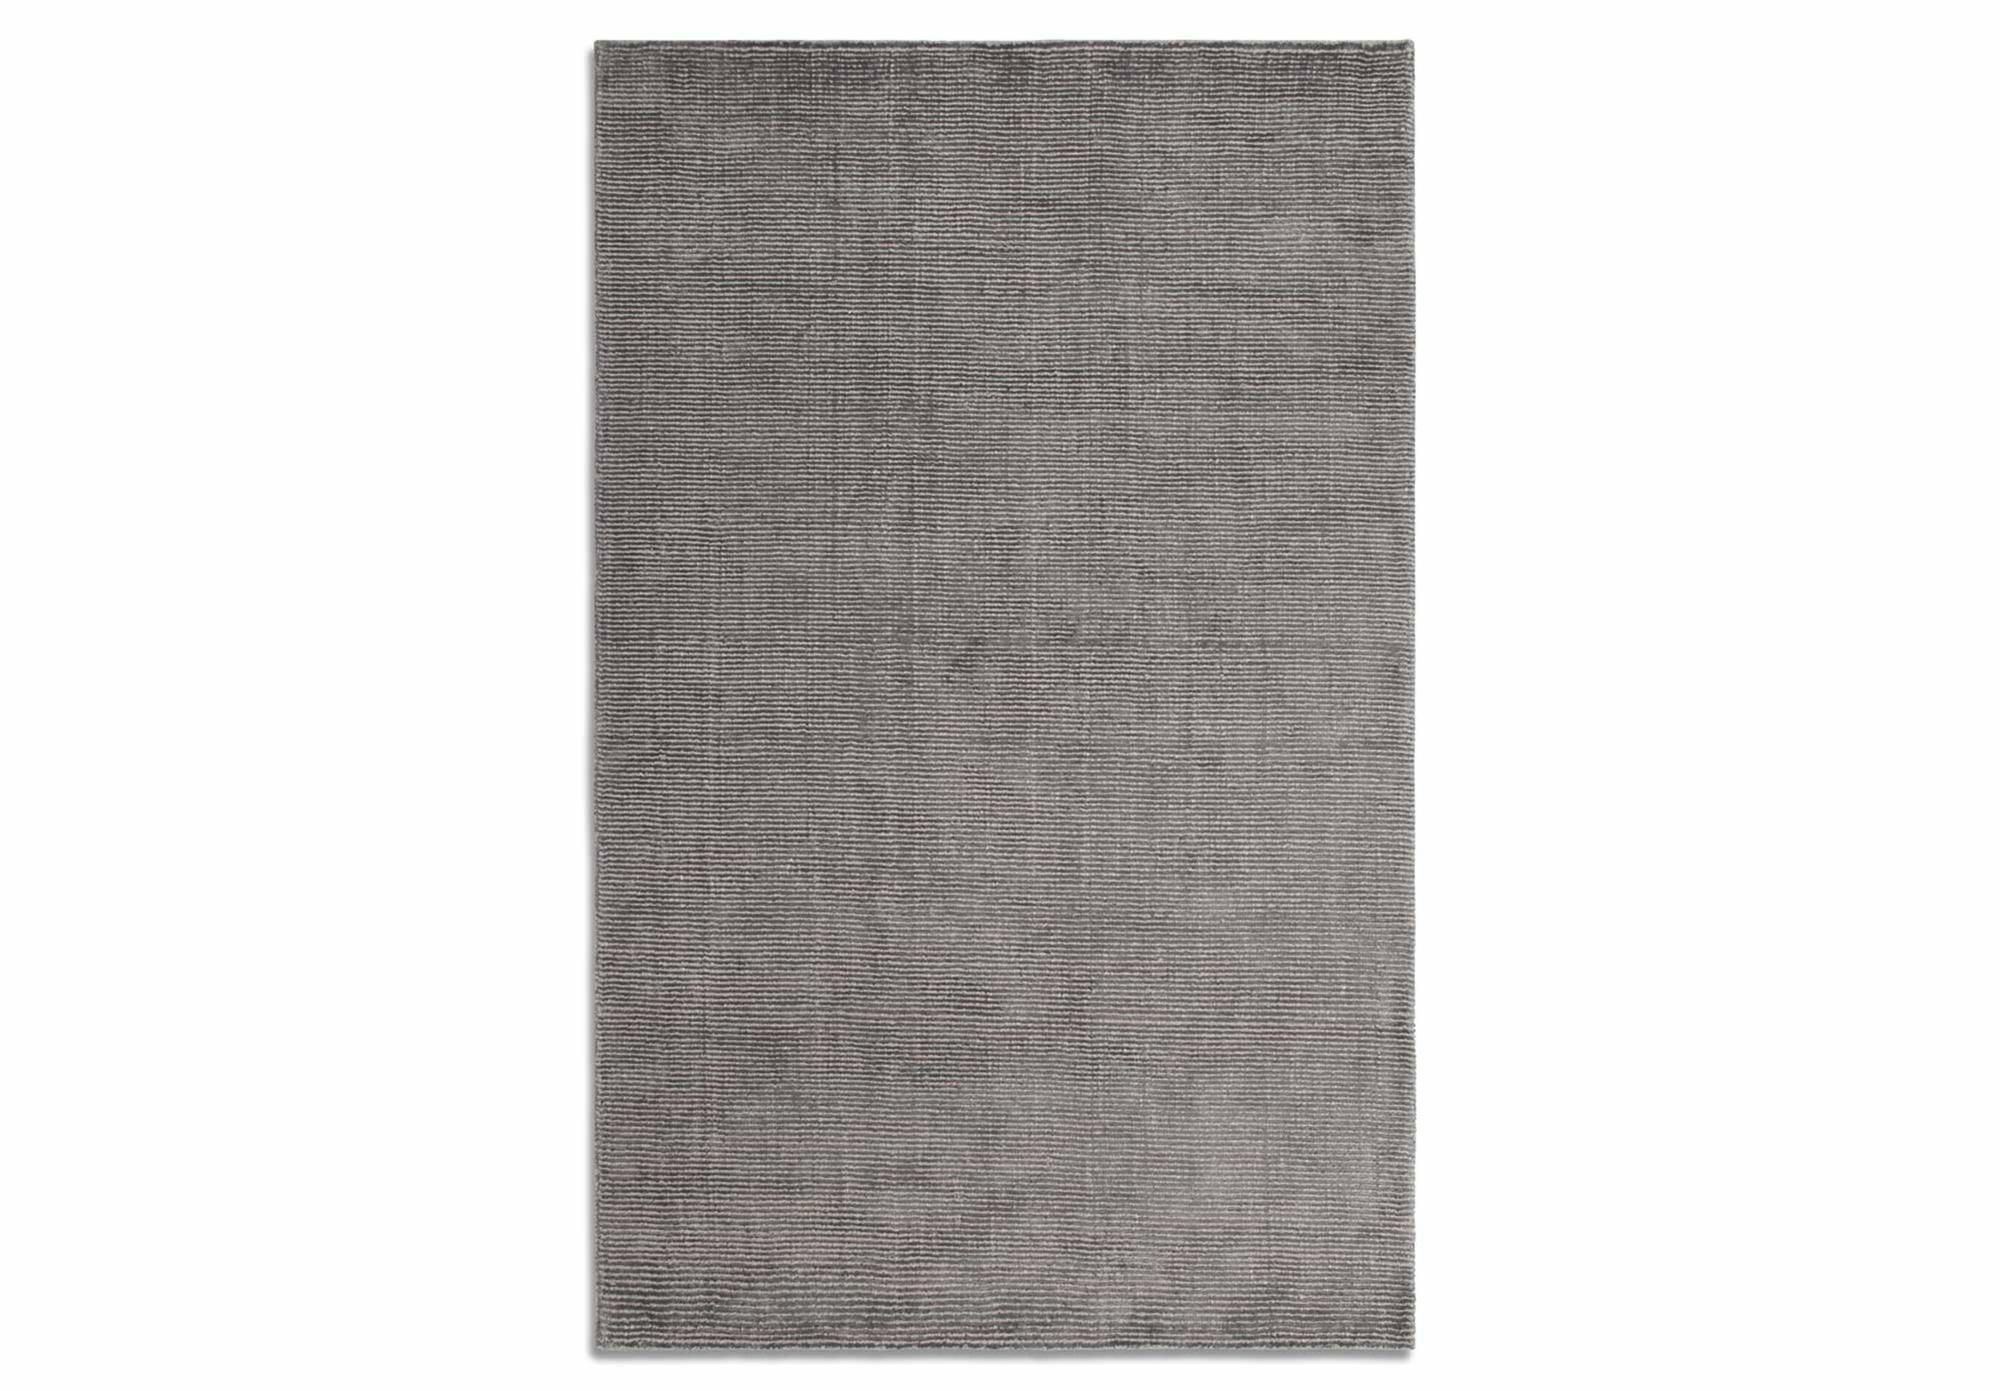 Atlantic Rug In Grey At Furniture Village   Rugs, Blankets And Cushions  From Furniture Village